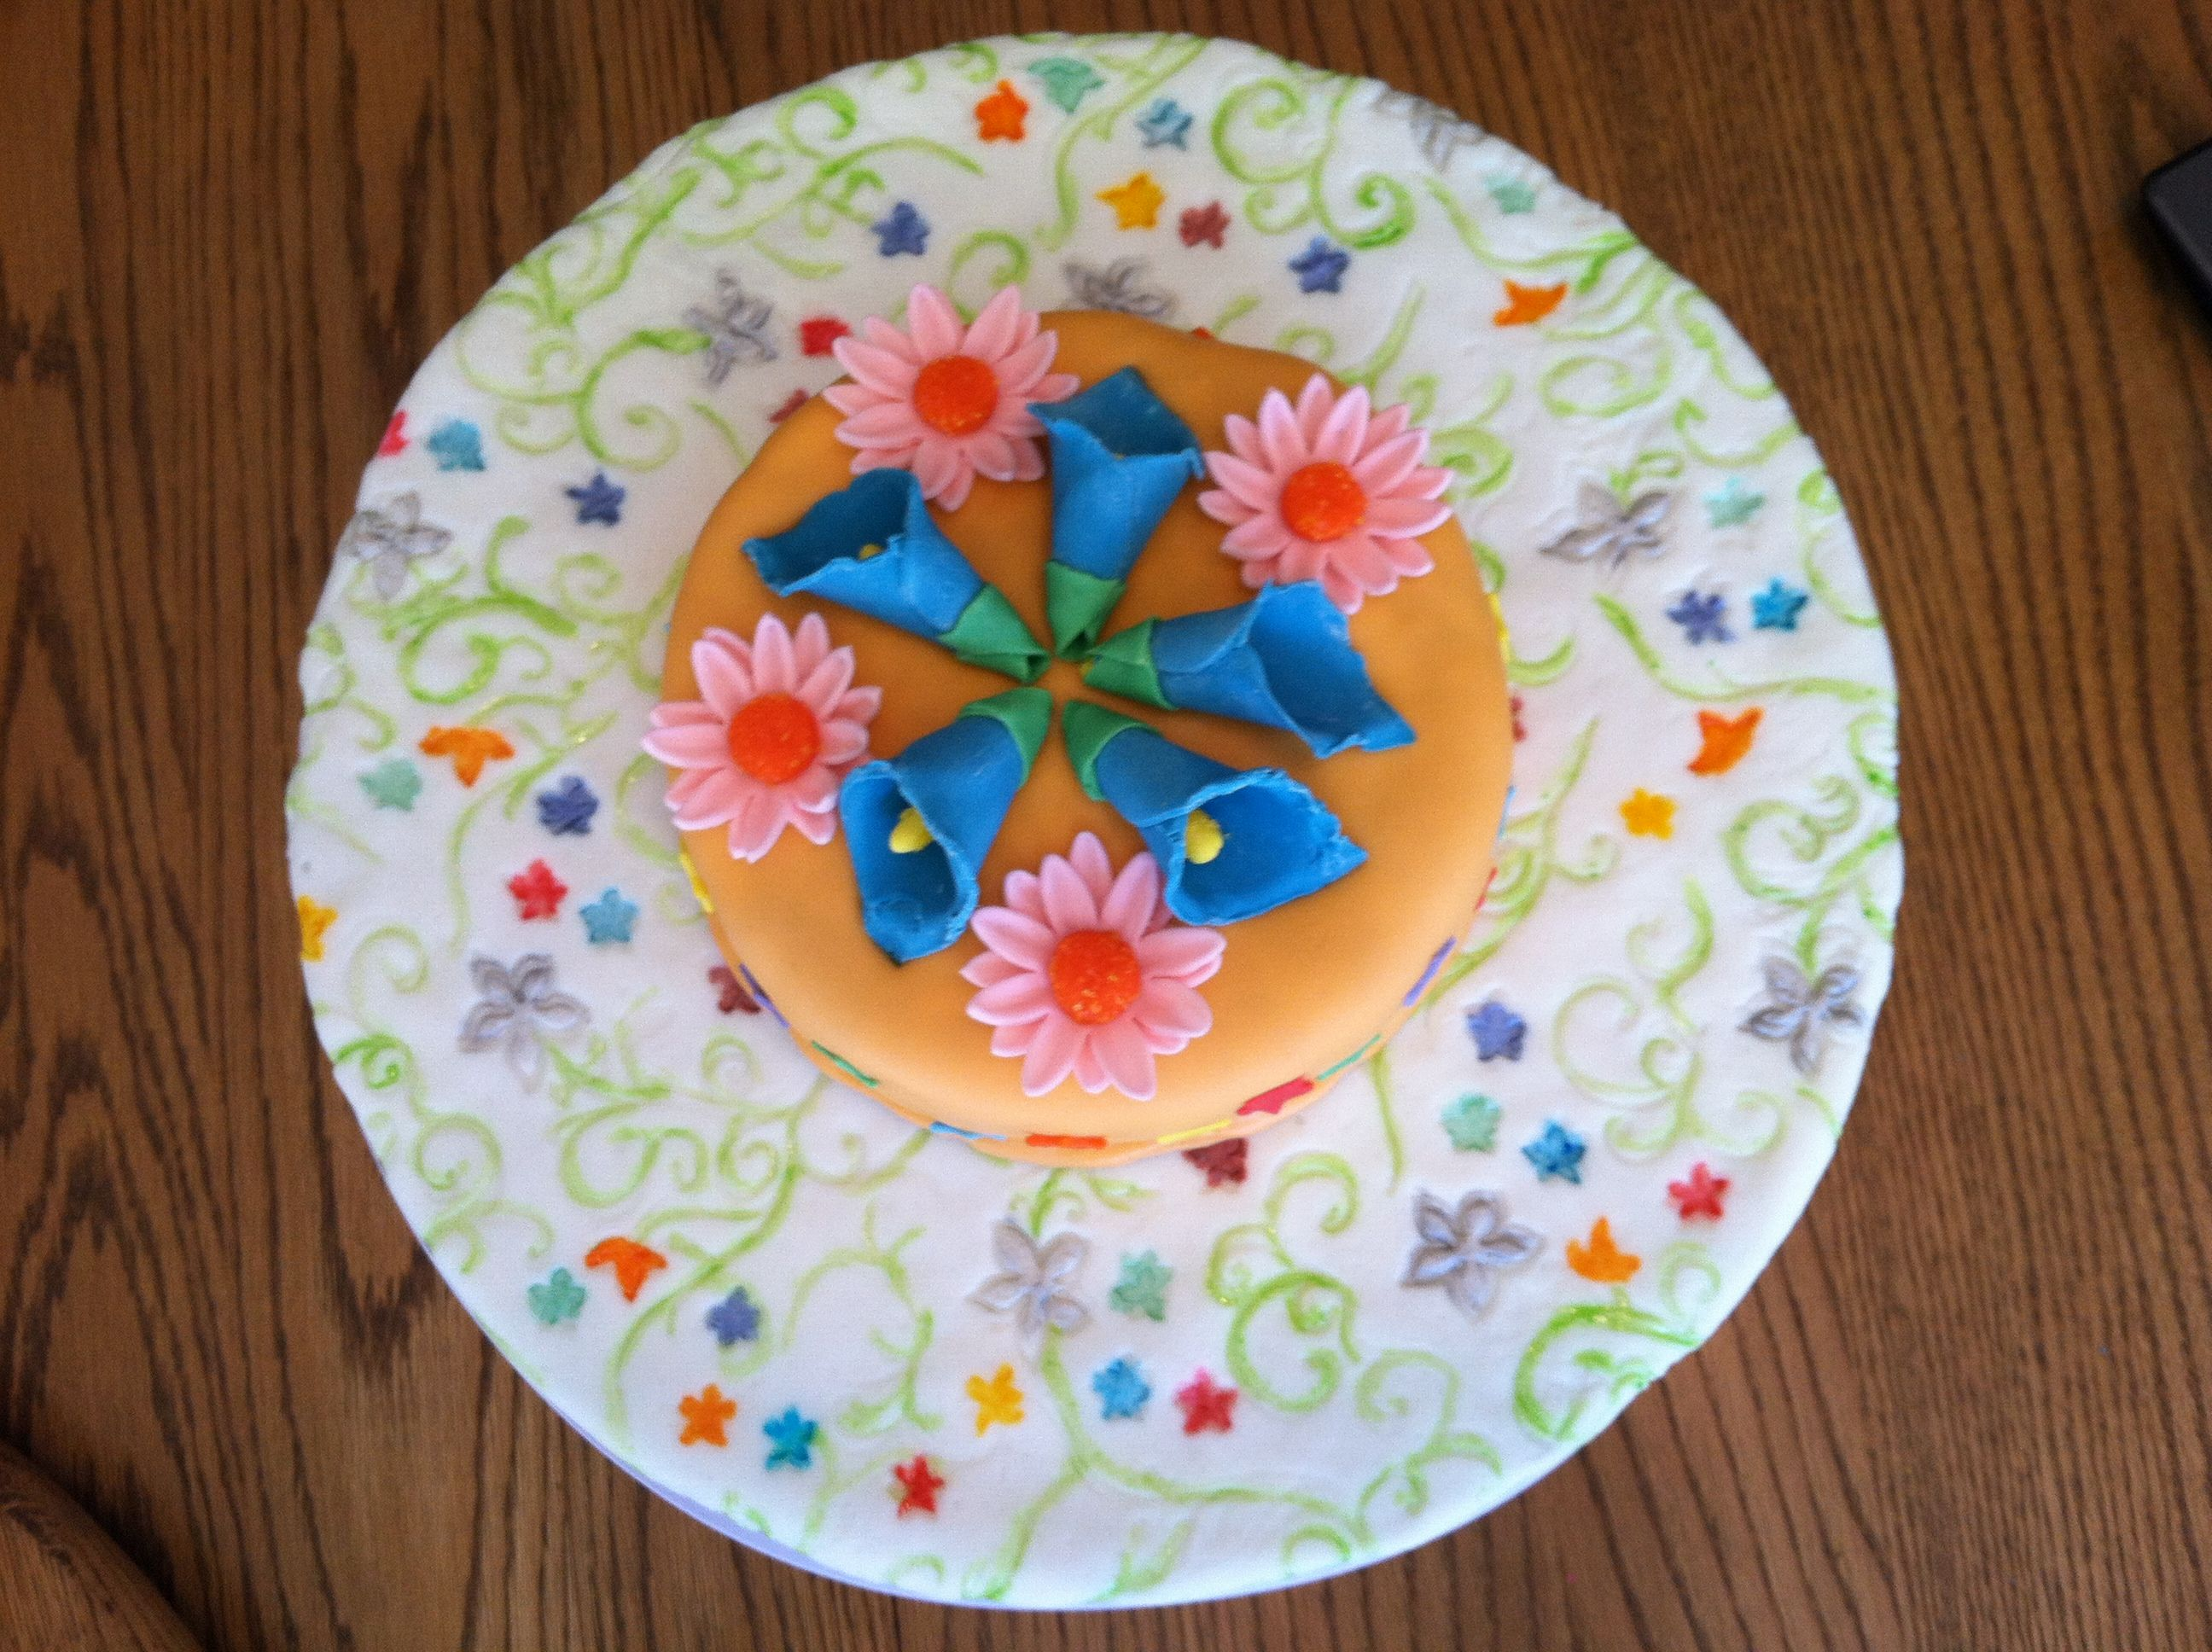 Michaels Cake Decorating Class Sign Up Fascinating Wiltoncontest Michael's Bakersfield Ca Rosedale Store Wilton Design Inspiration